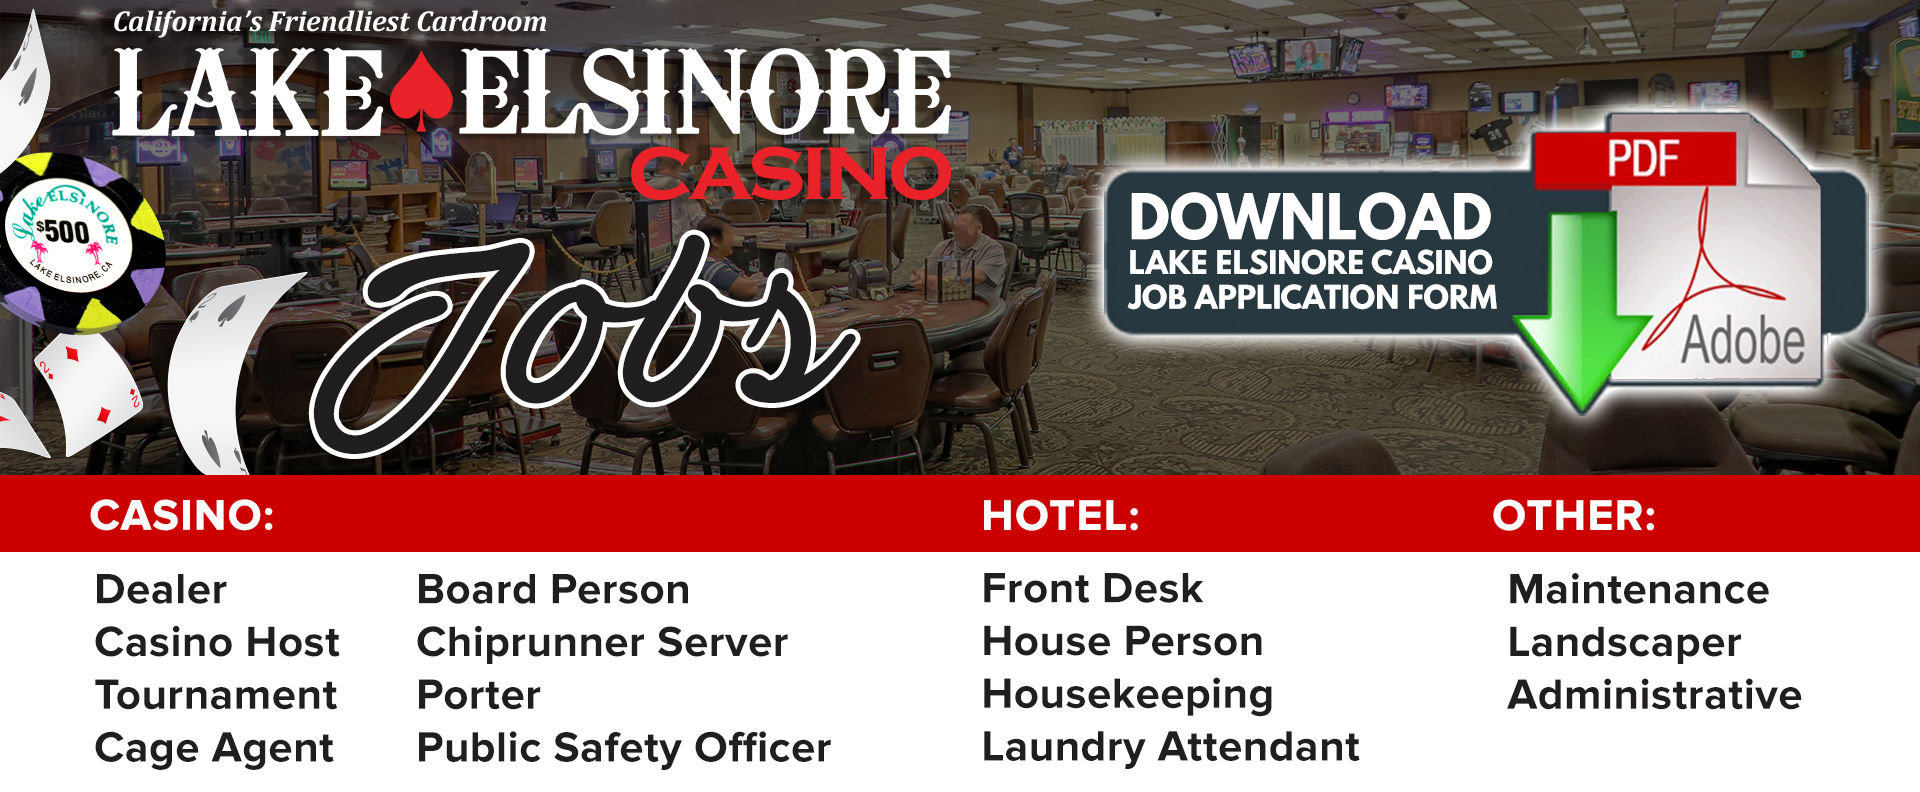 Careers | Lake Elsinore Casino & Poker Room